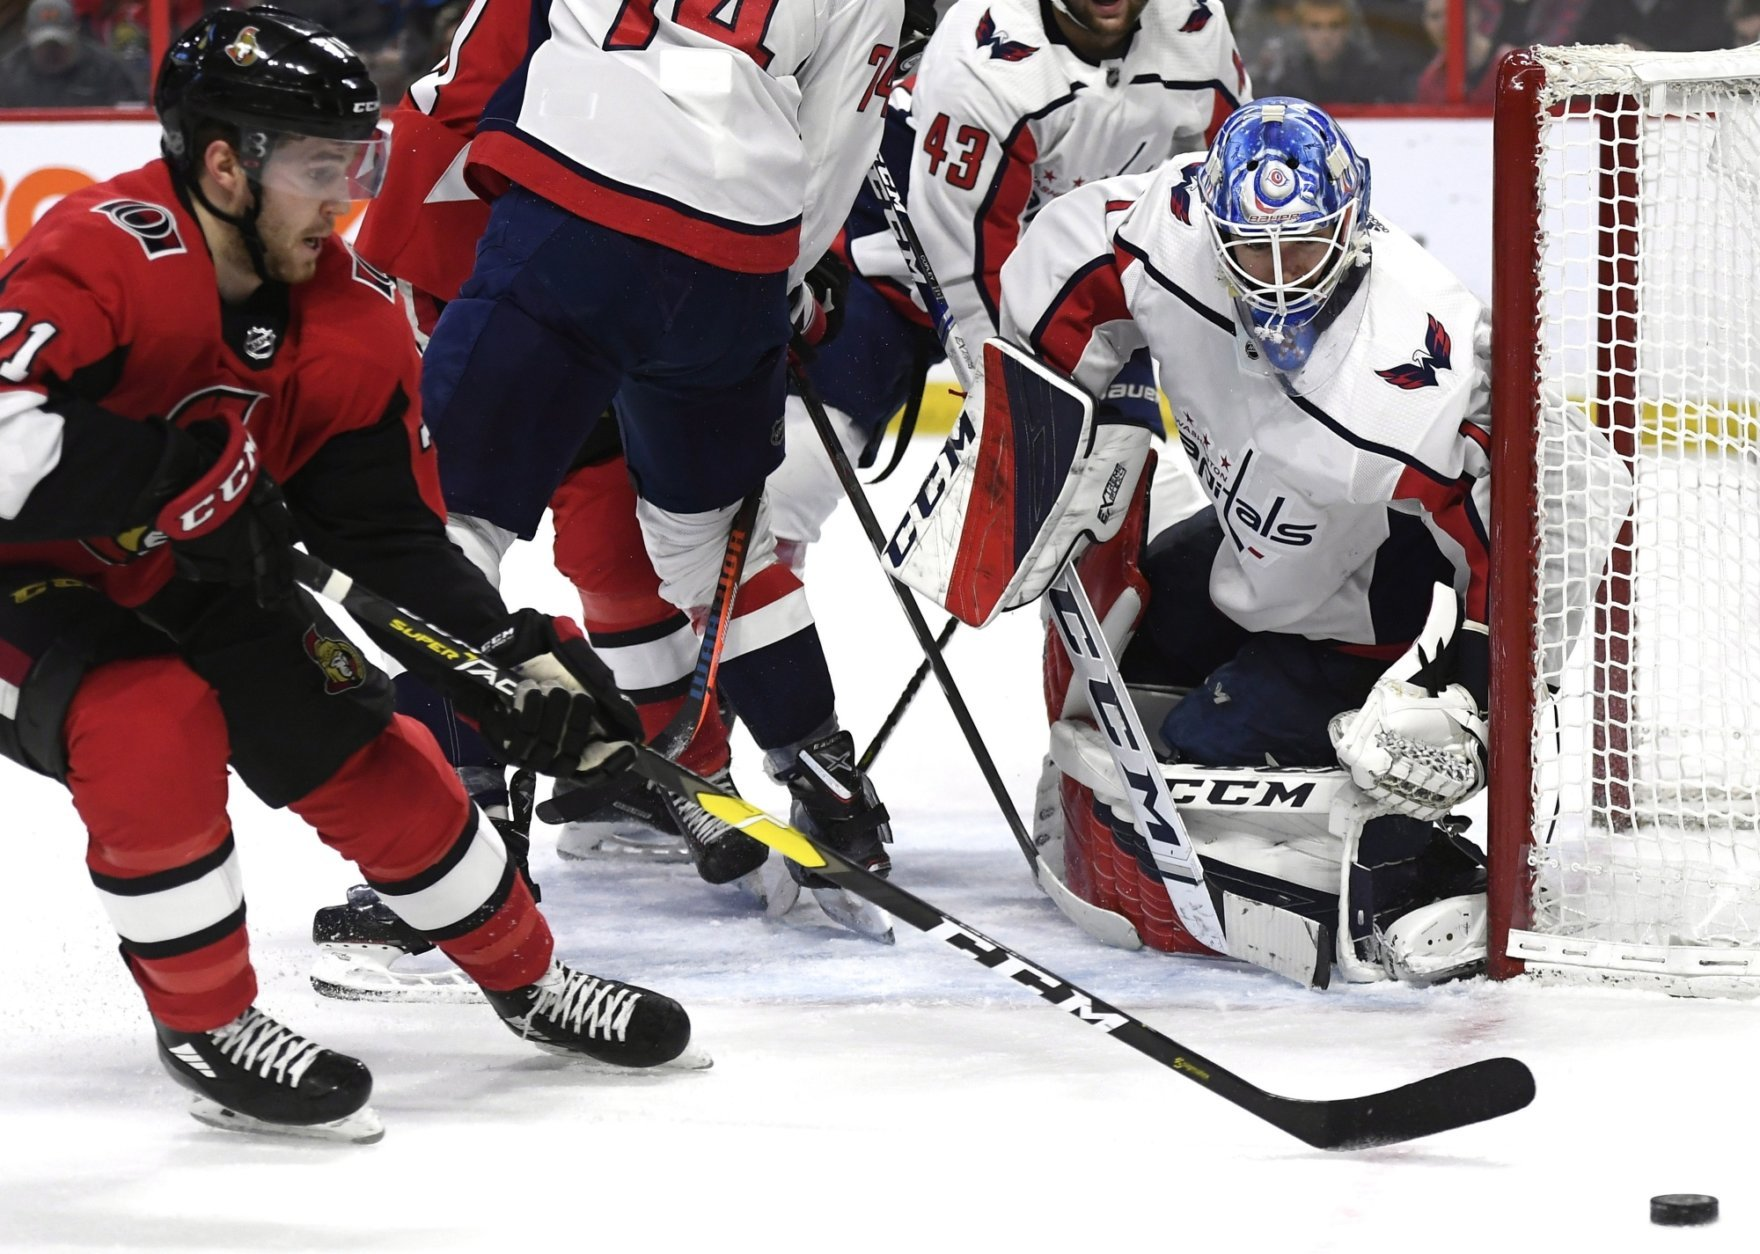 Washington Capitals goaltender Pheonix Copley (1) watches the puck as Ottawa Senators center Chris Tierney (71) tries to control it during the second period of an NHL hockey game, Saturday, Dec. 29, 2018 in Ottawa, Ontario. (Justin Tang/The Canadian Press via AP)